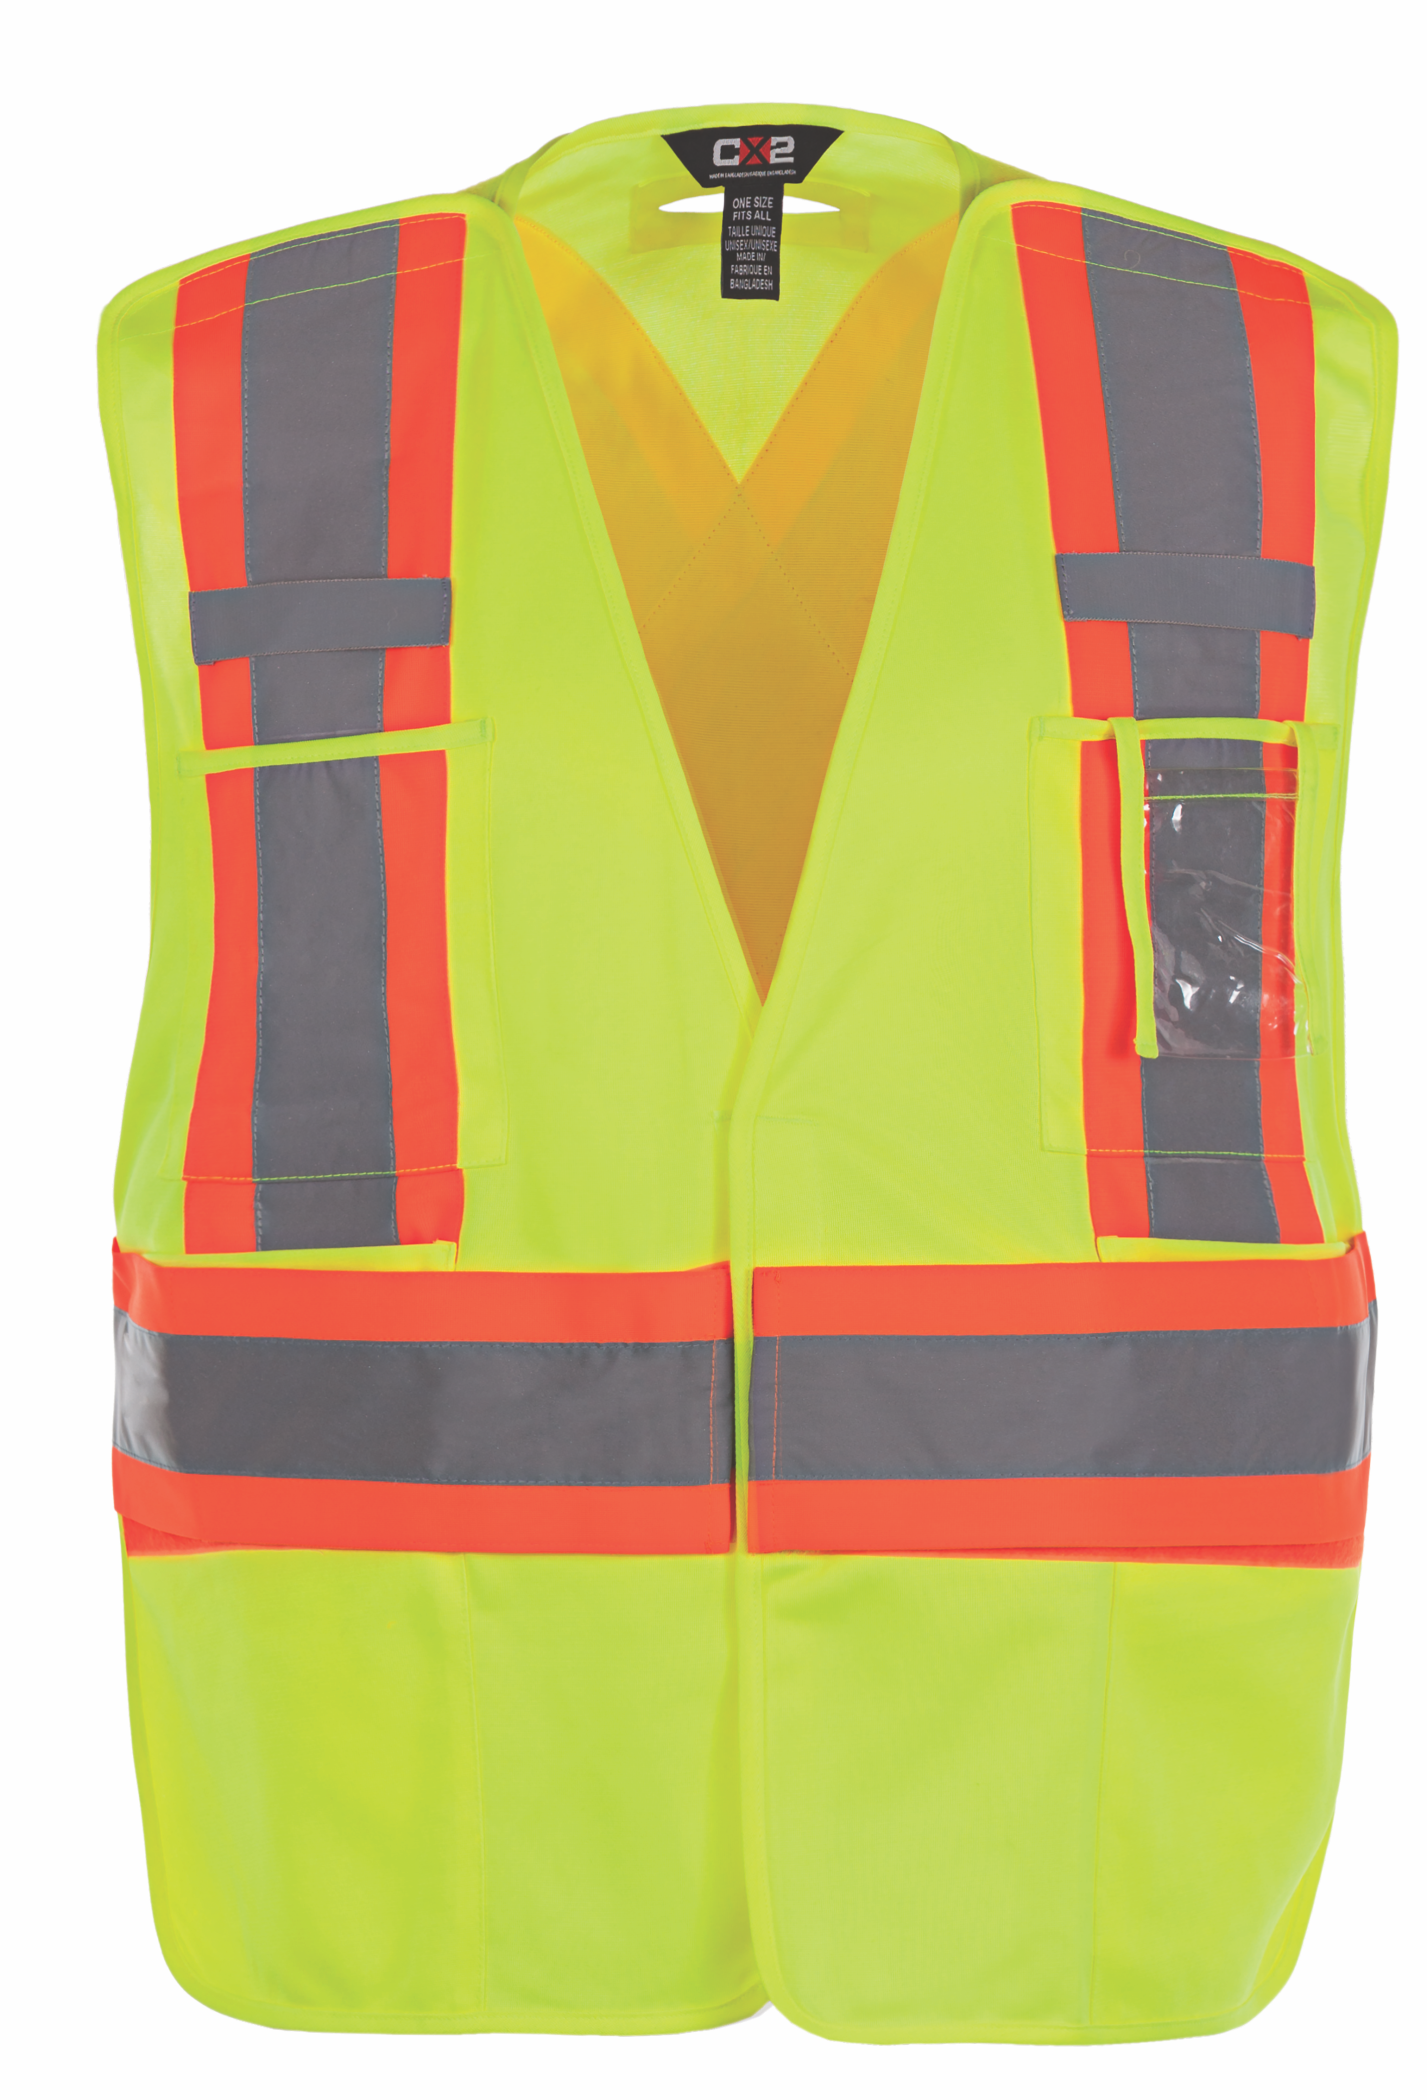 CANADA SPORTSWEAR ONE SIZE PROTECTOR HI-VIS SAFETY VEST